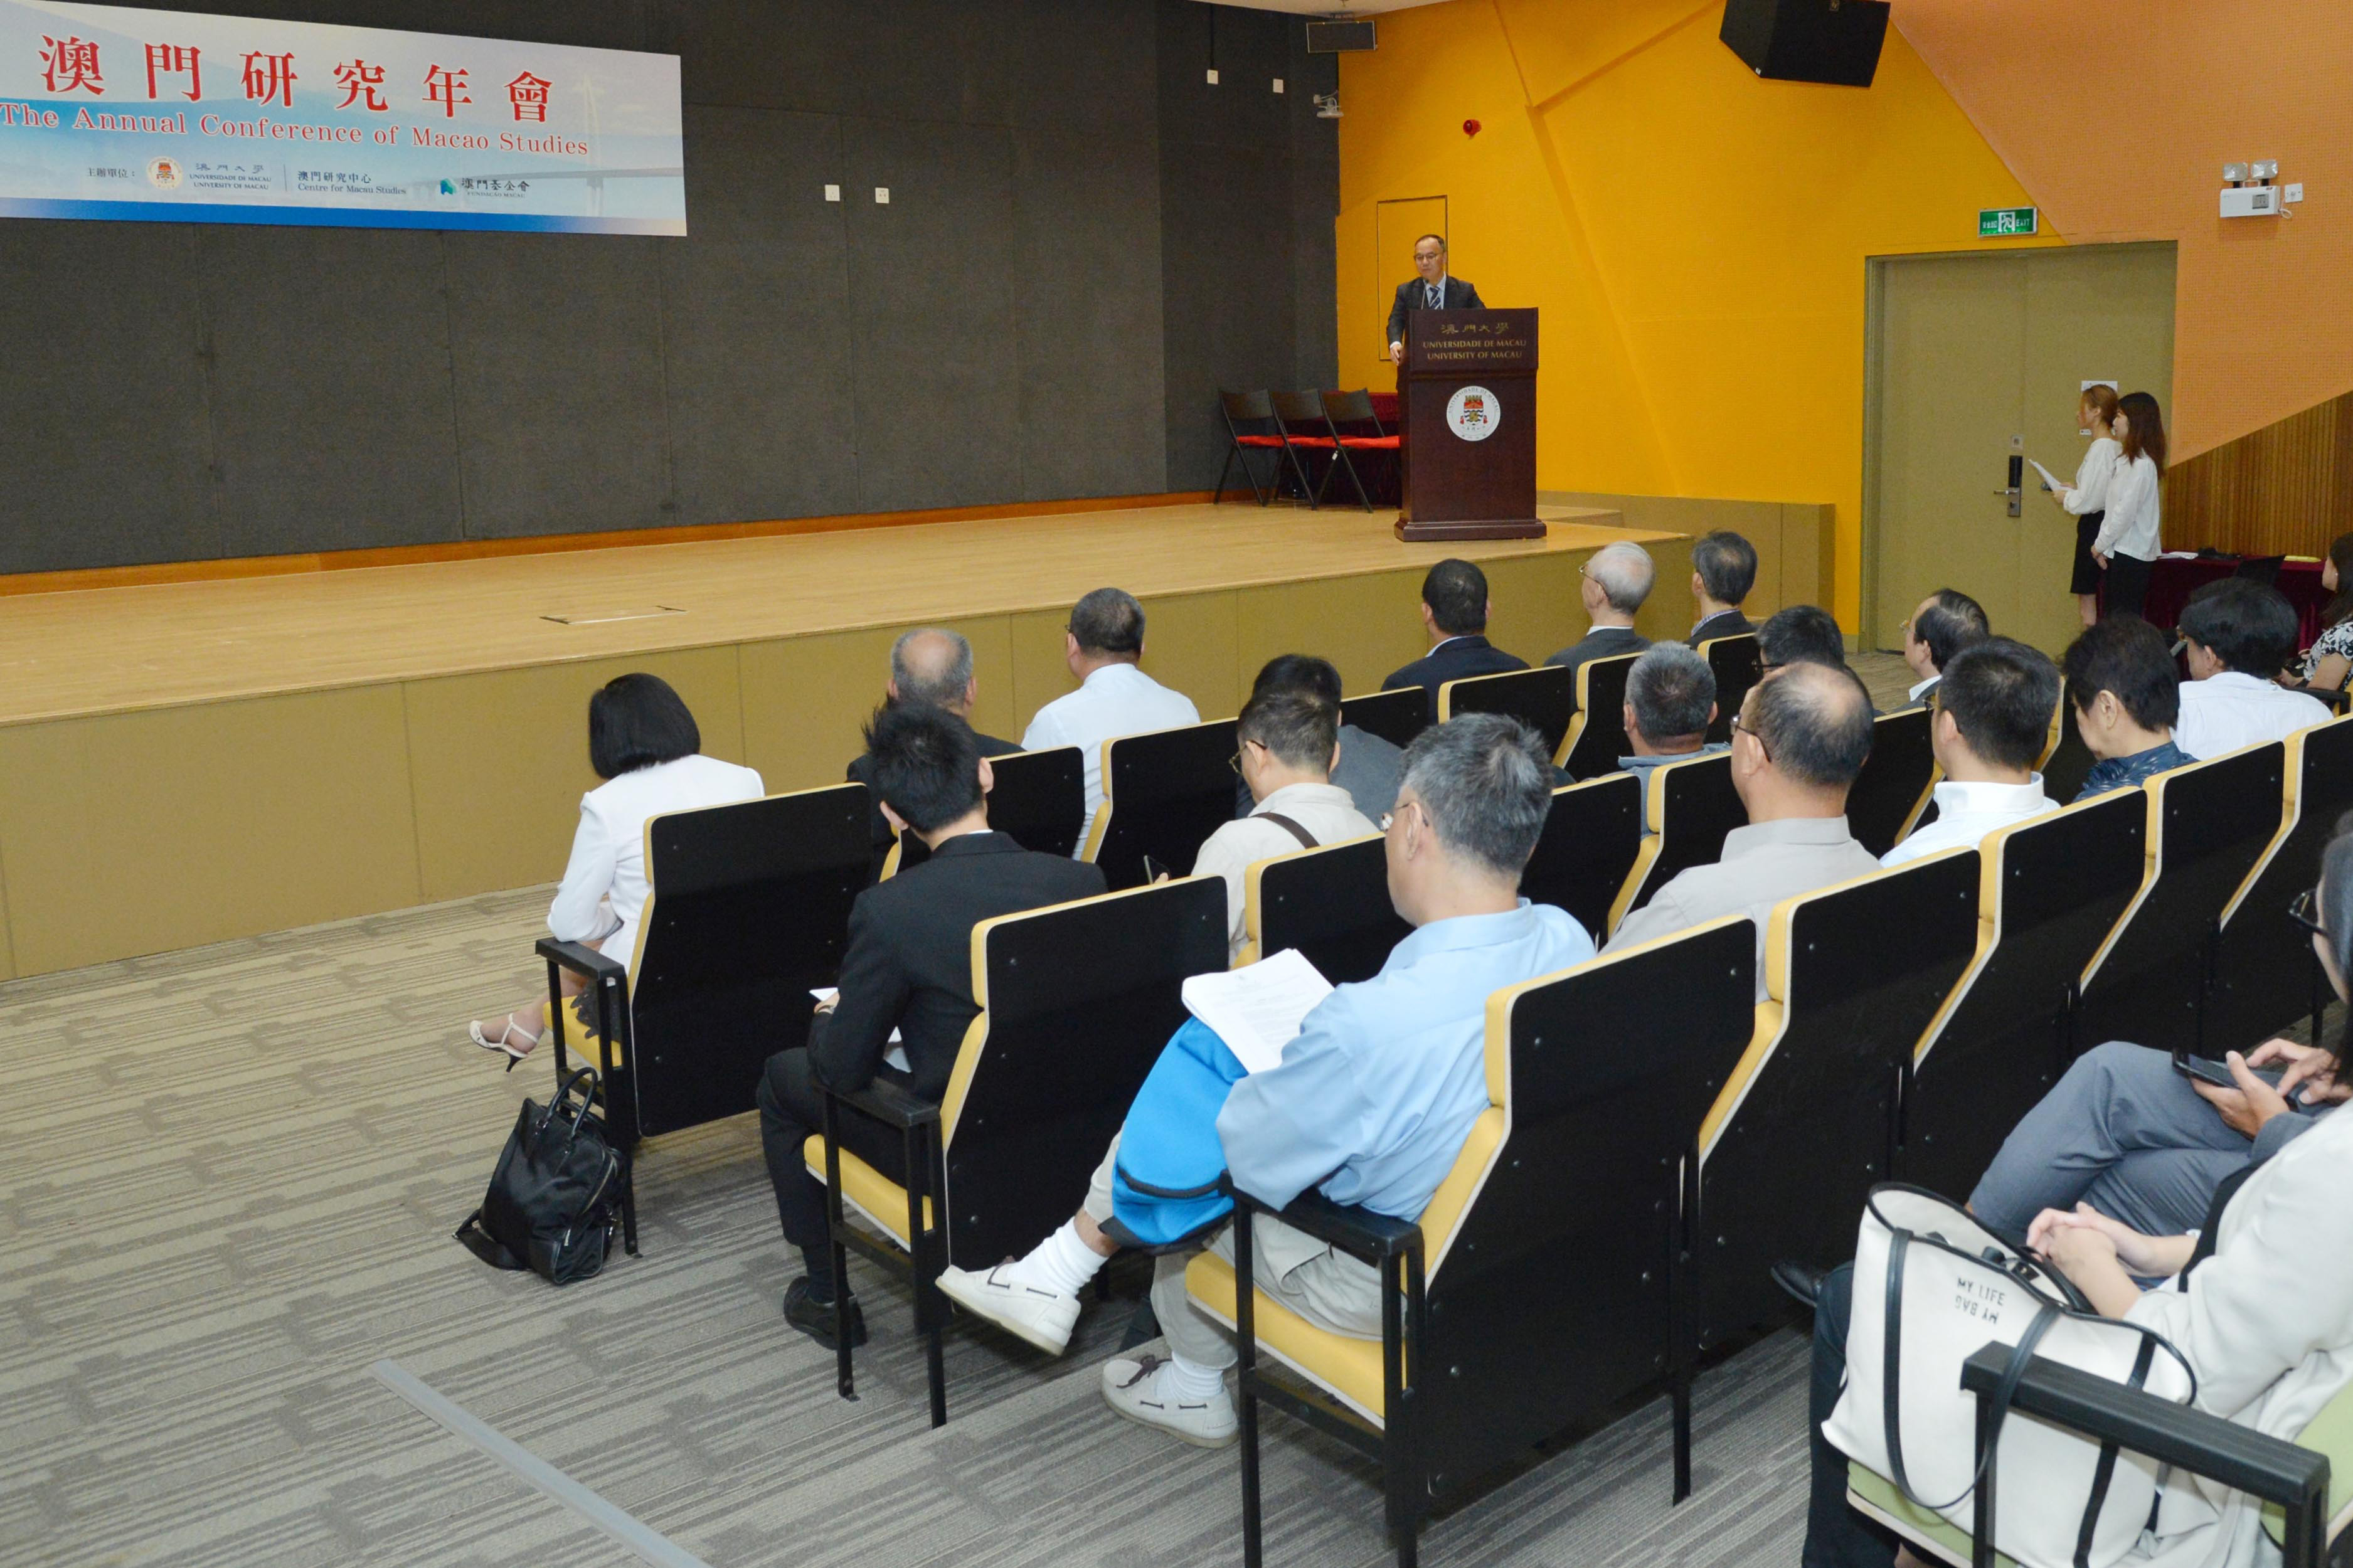 The Annual Conference of Macao Studies 2019